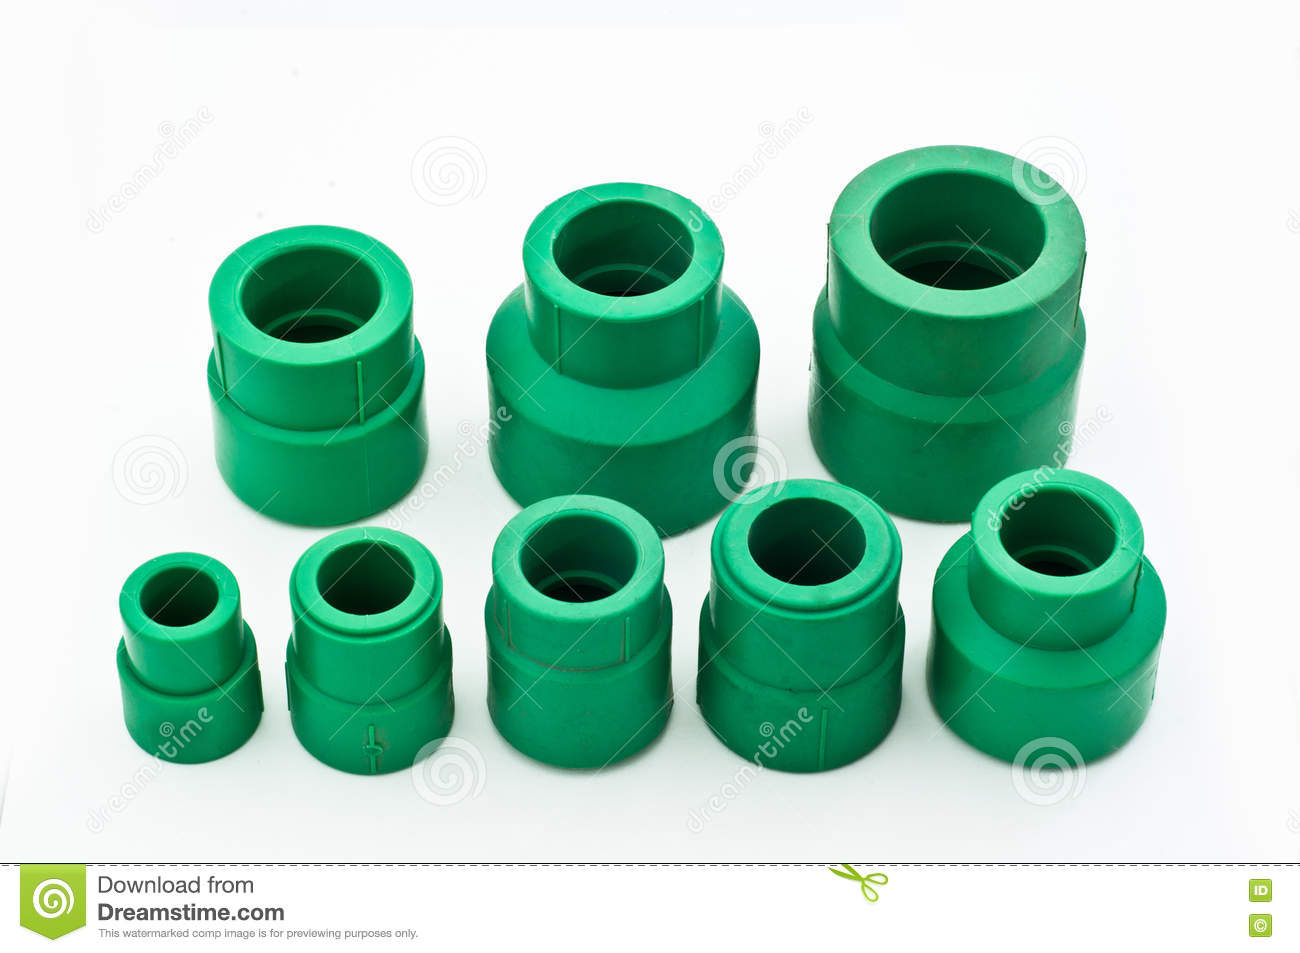 Assorted green pvc pipe fittings stock photo image